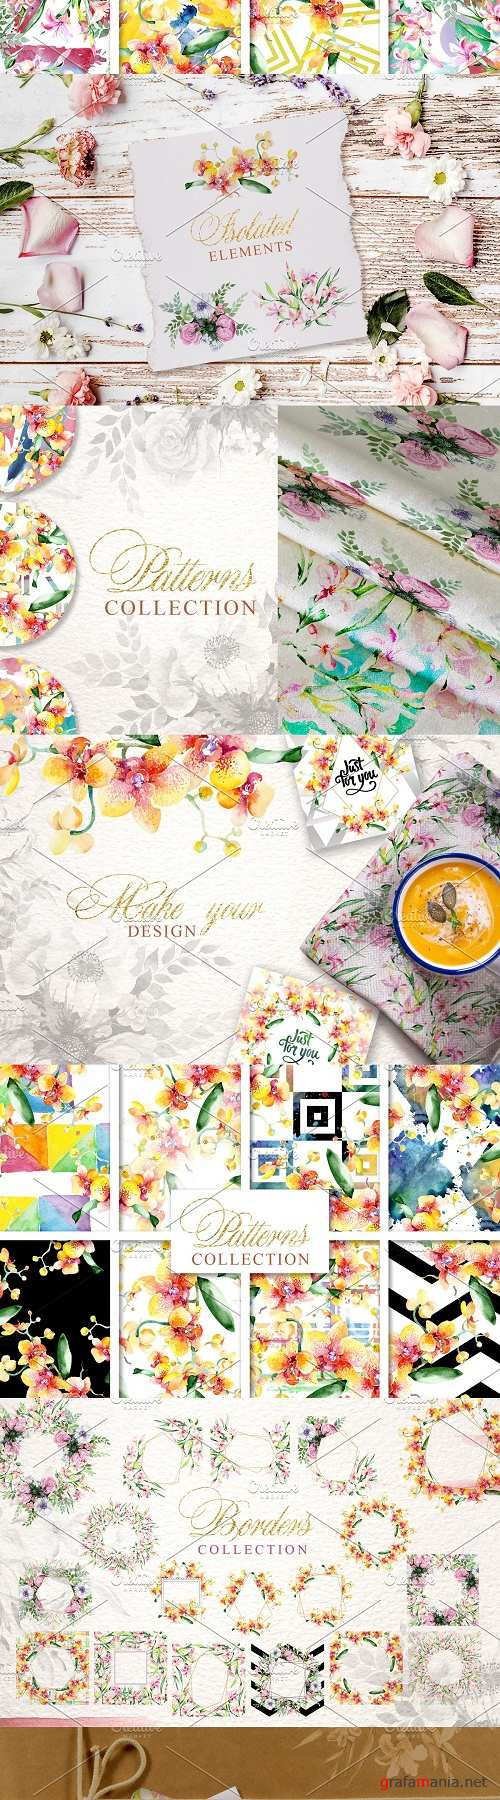 Magnificent Bouquets watercolor PNG - 3139590